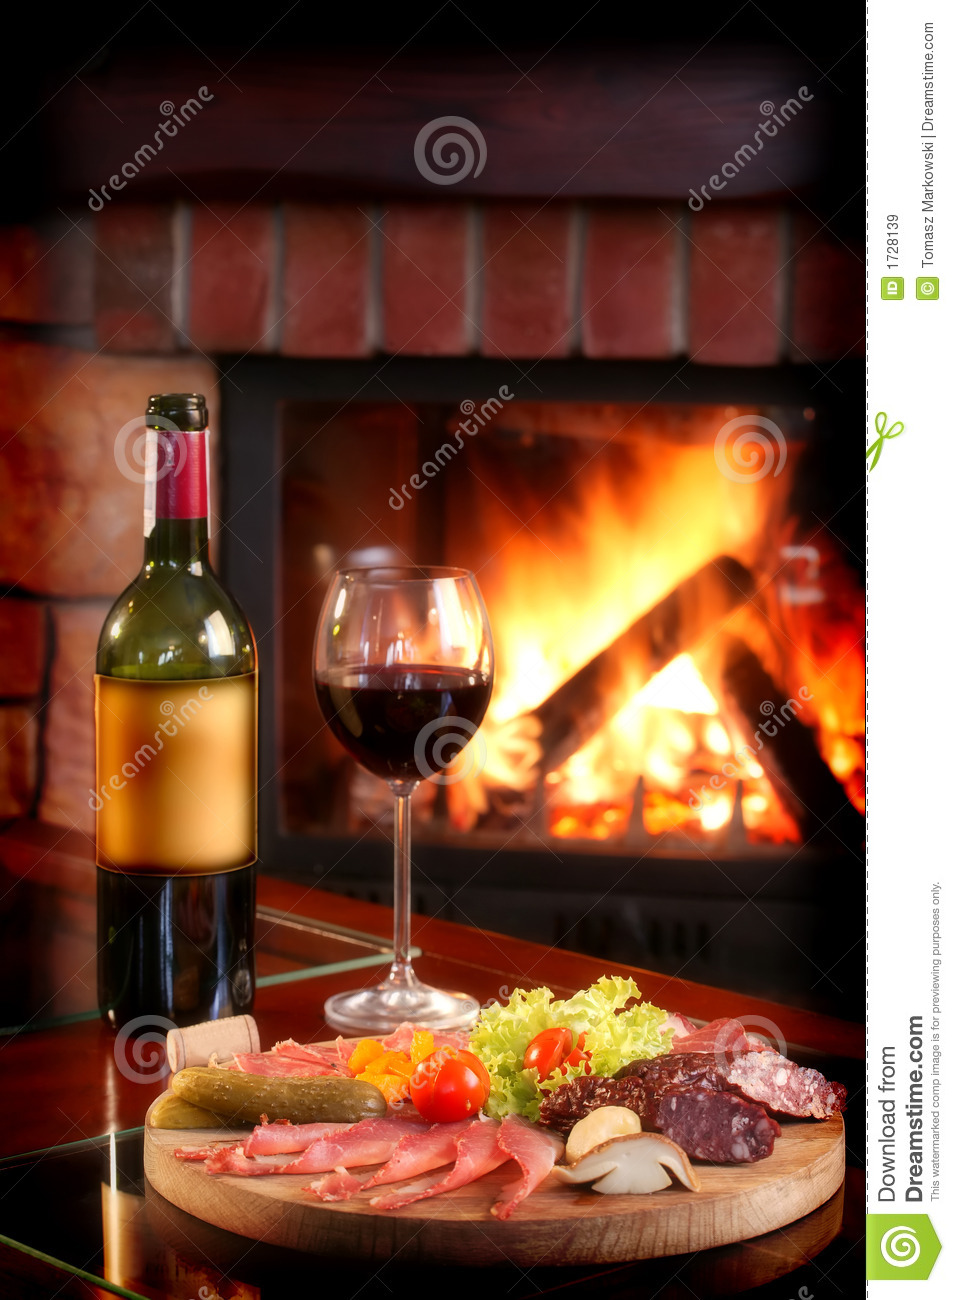 3d Wallpaper Fire Fireplace And Red Wine Royalty Free Stock Images Image